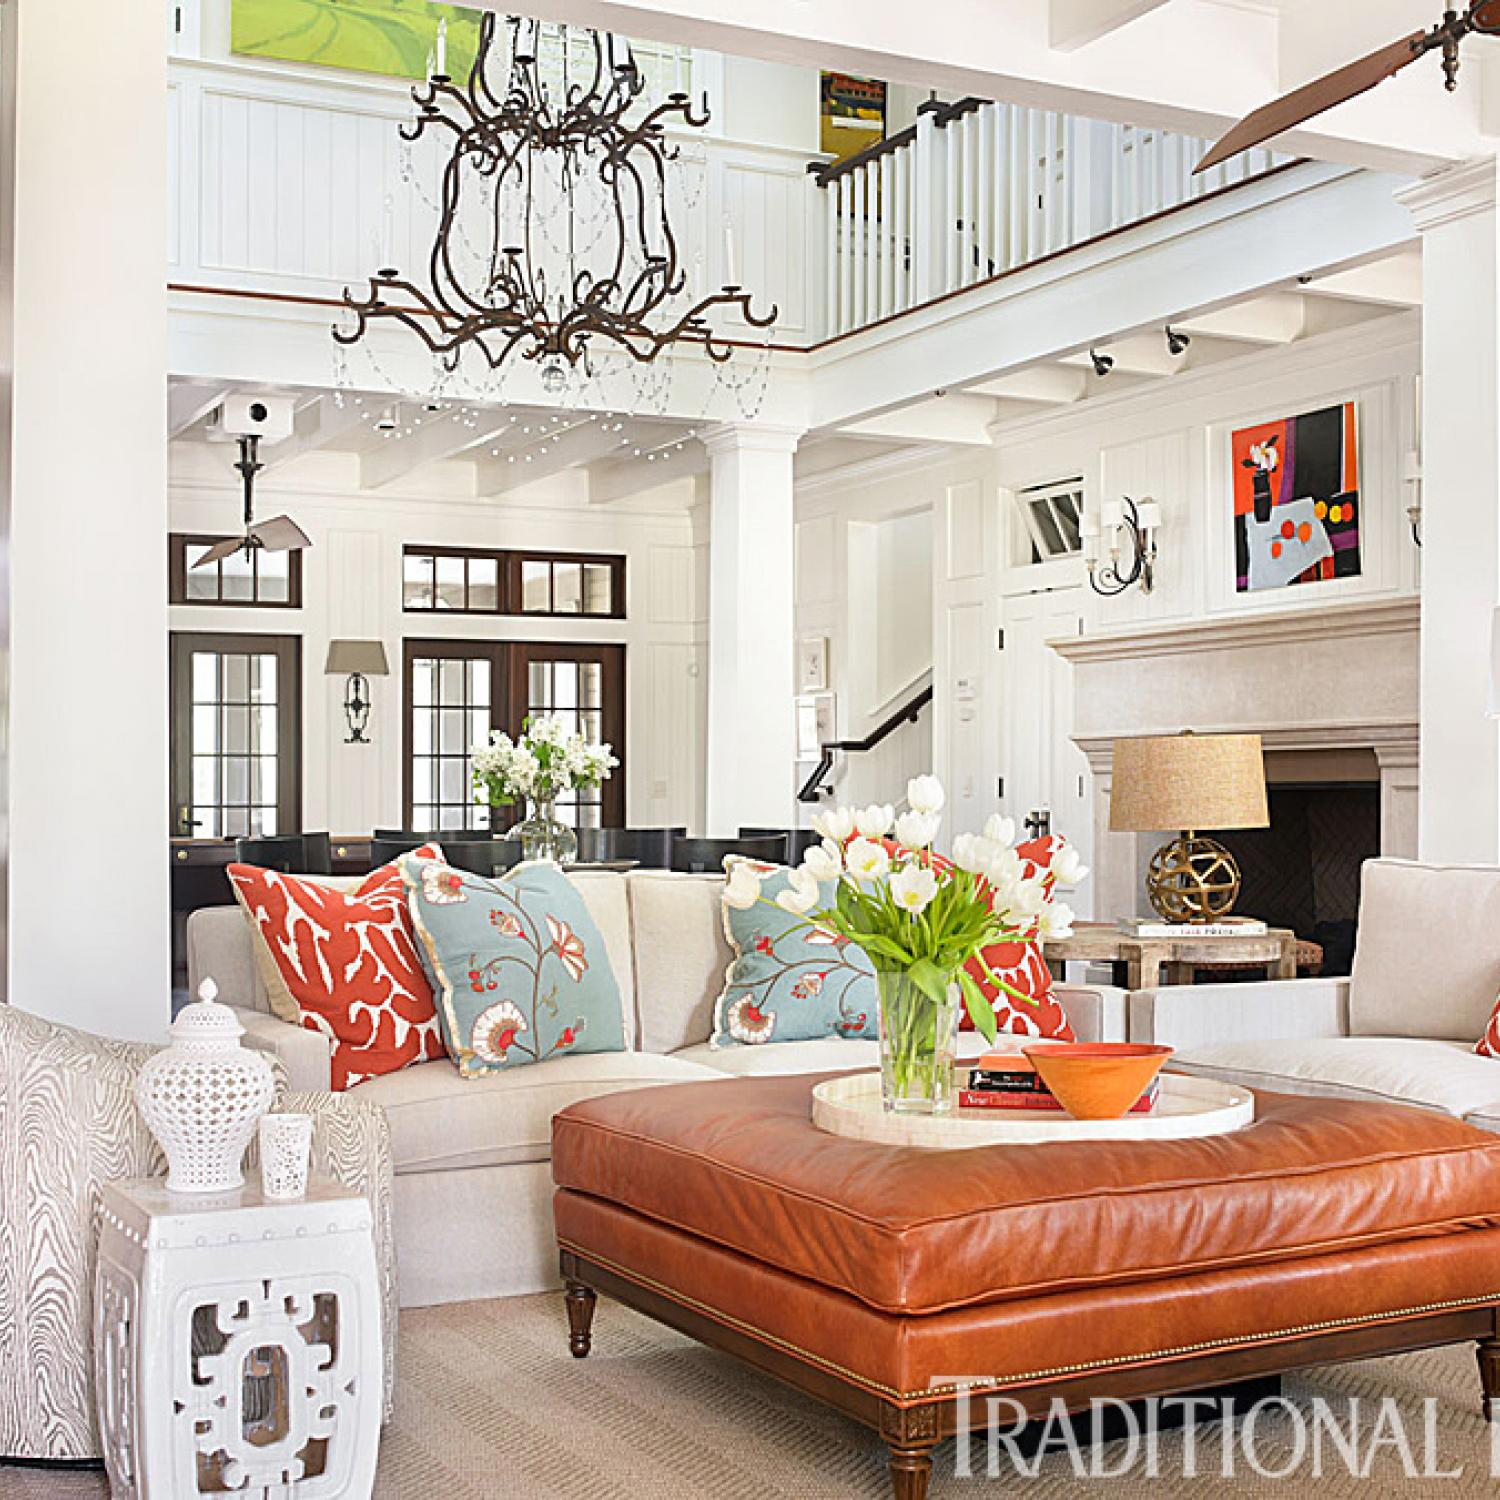 Traditional Interior Design By Ownby: Breezy Lowcountry Home